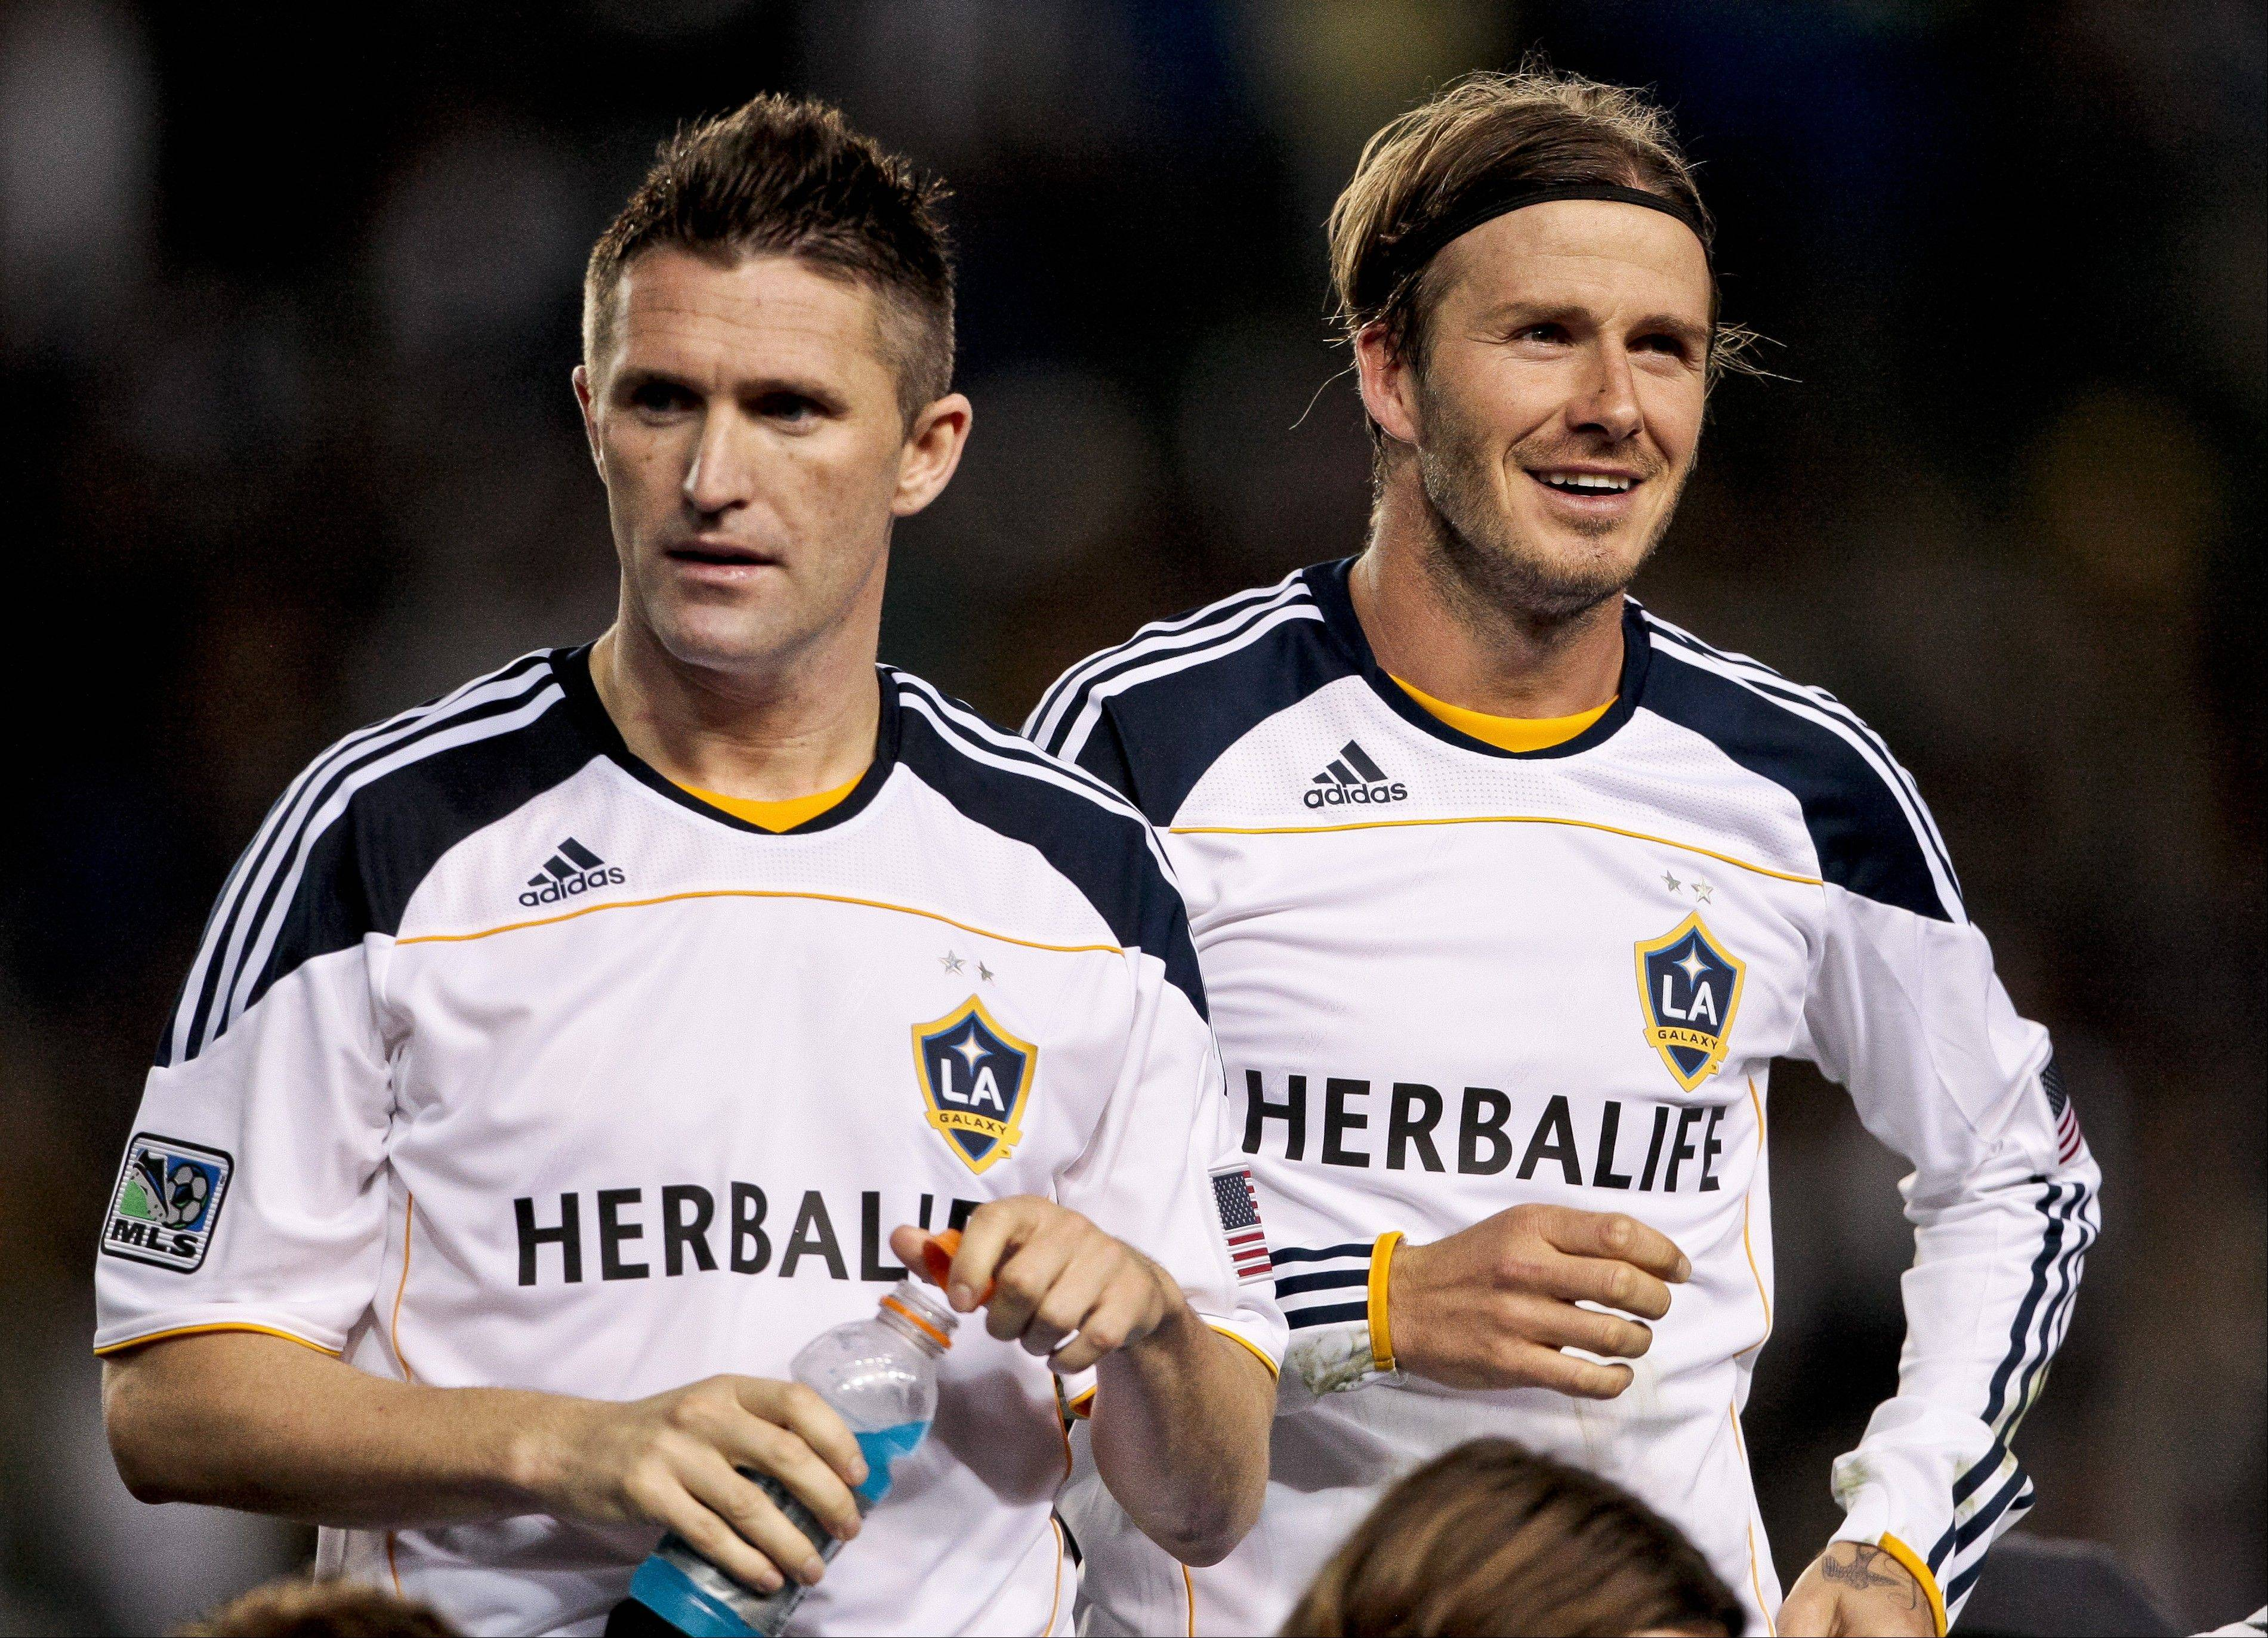 David Beckham, right, is gone, but the Los Angeles Galaxy still has Robbie Keane as it tries to defend its 2012 MLS Cup title. The Seattle Sounders, Real Salt Lake and San Jose Earthquakes, however, could pull ahead of the Galaxy this season.